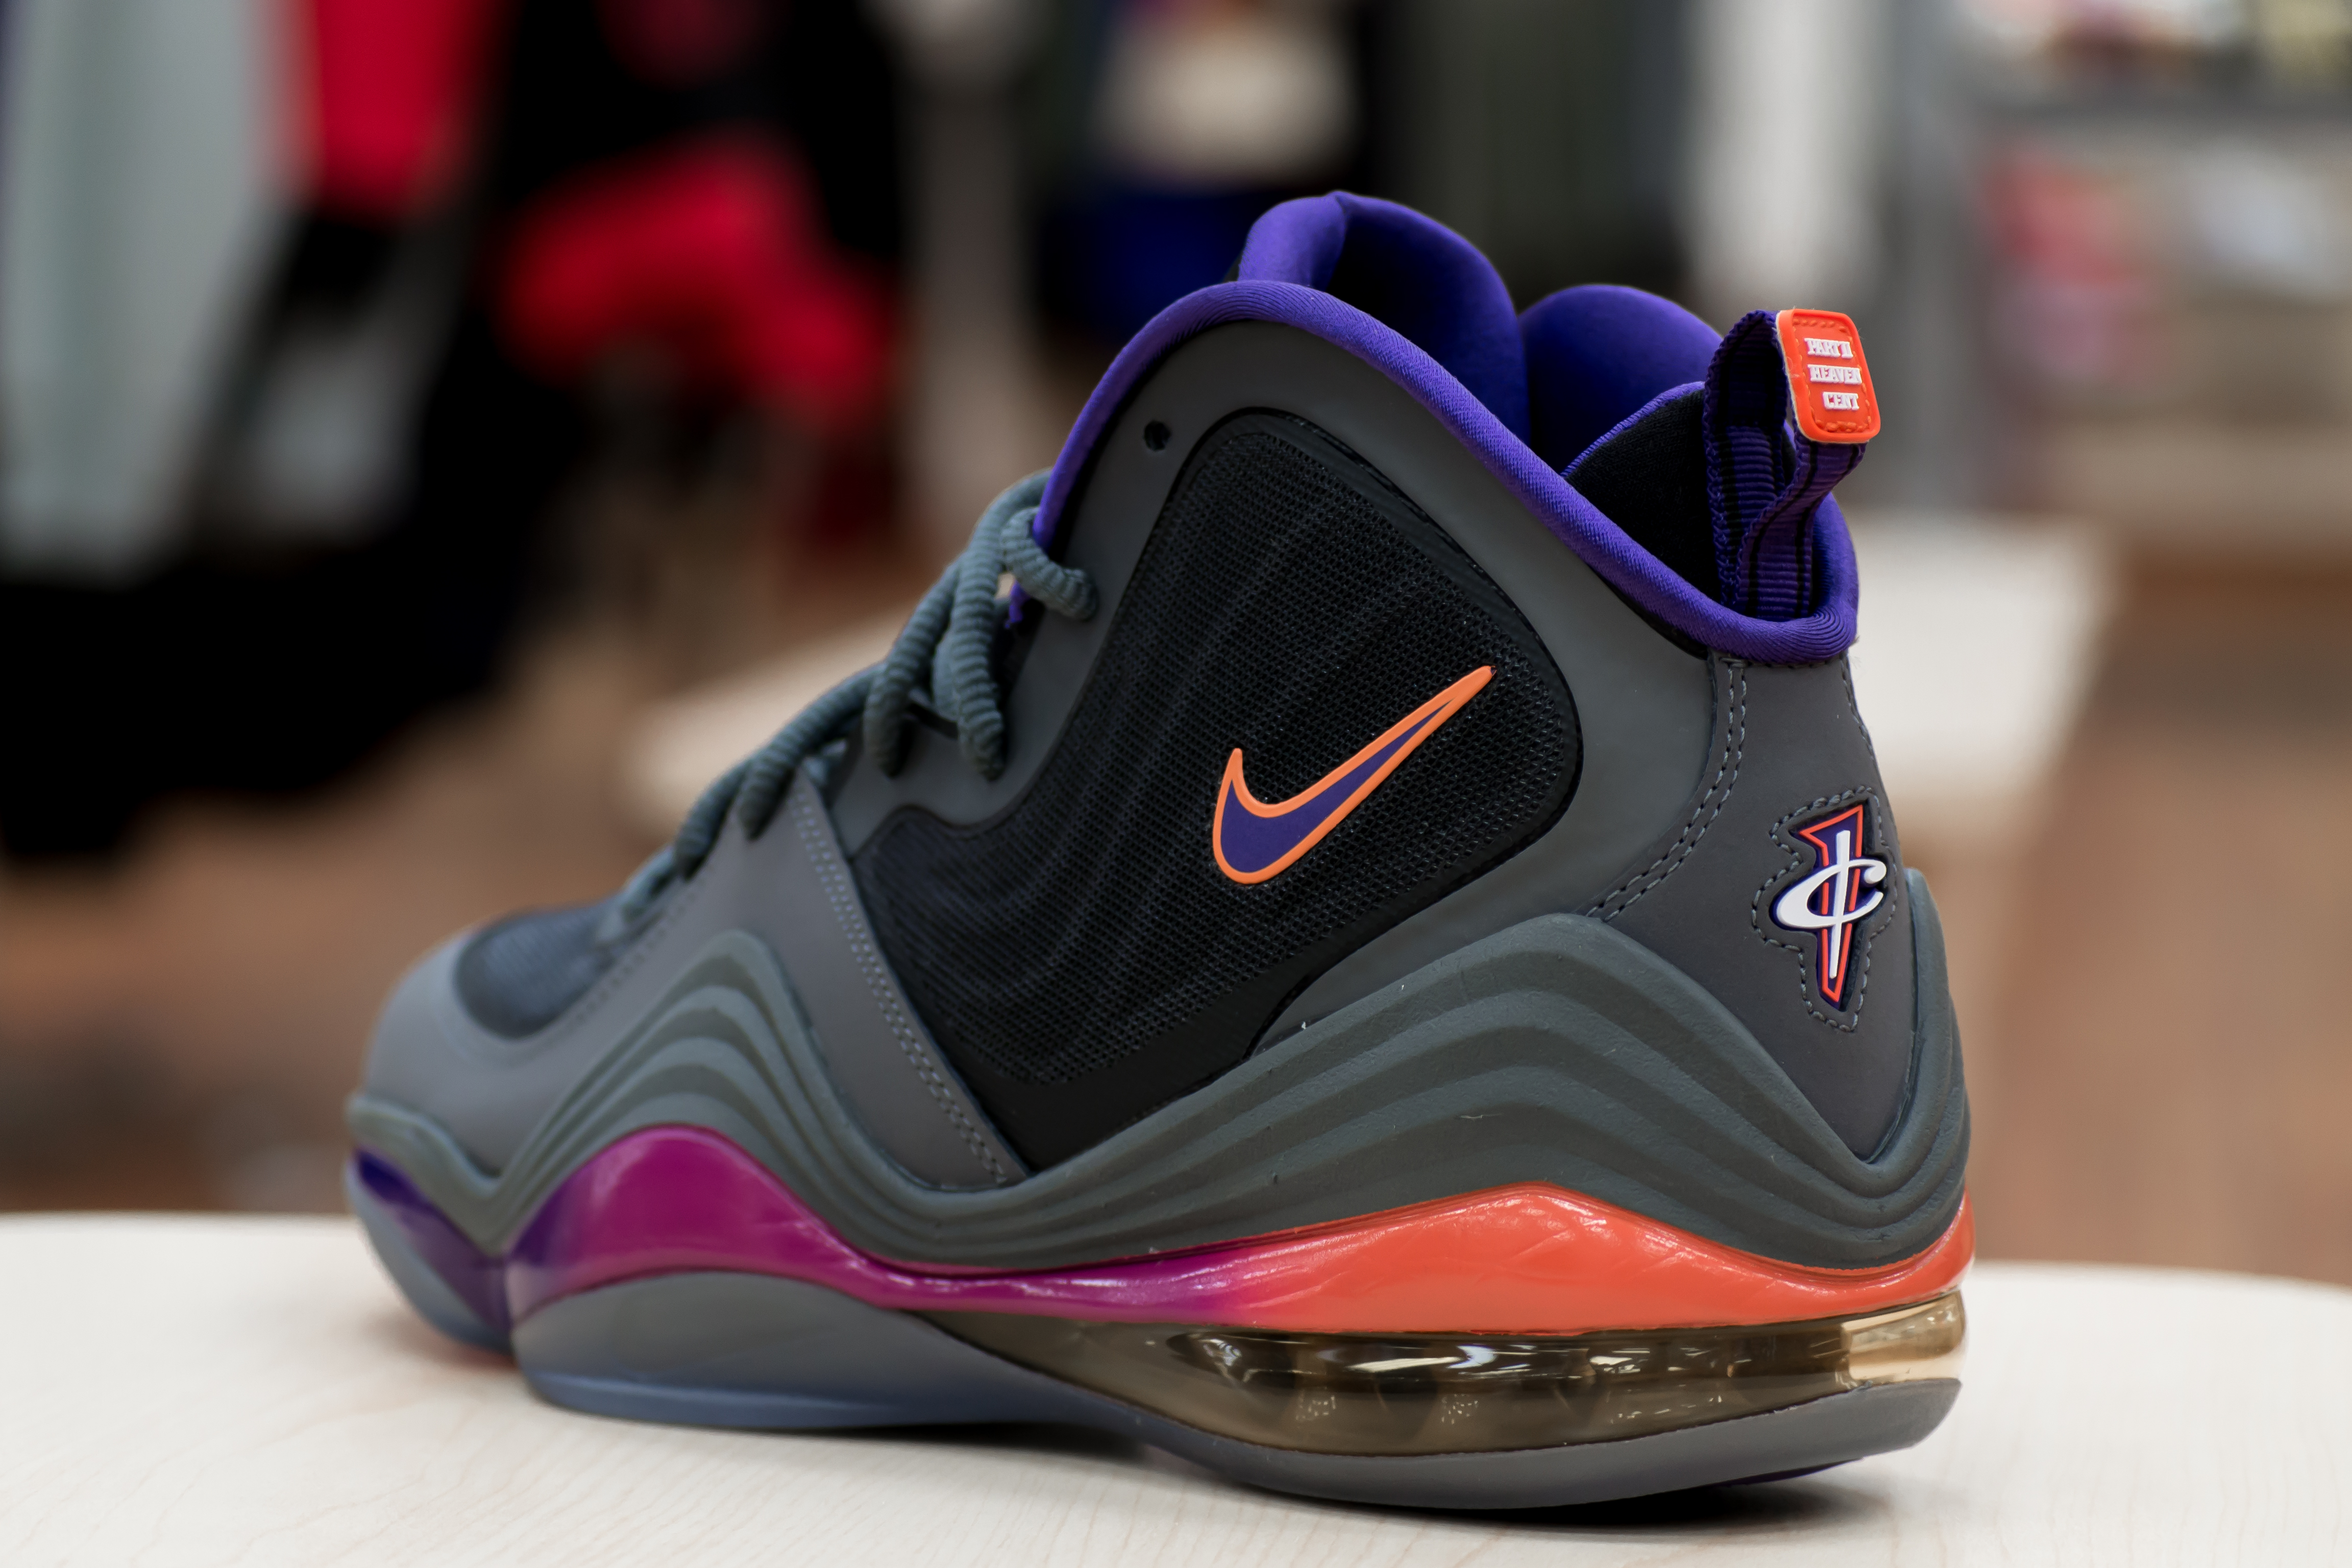 new style e2101 6de5d Having played for the Phoenix Suns from 1999 to 2004, Penny Hardaway is set  to see a Dark Grey Black-Rave Pink-Court Purple colorway of his signature  Nike ...